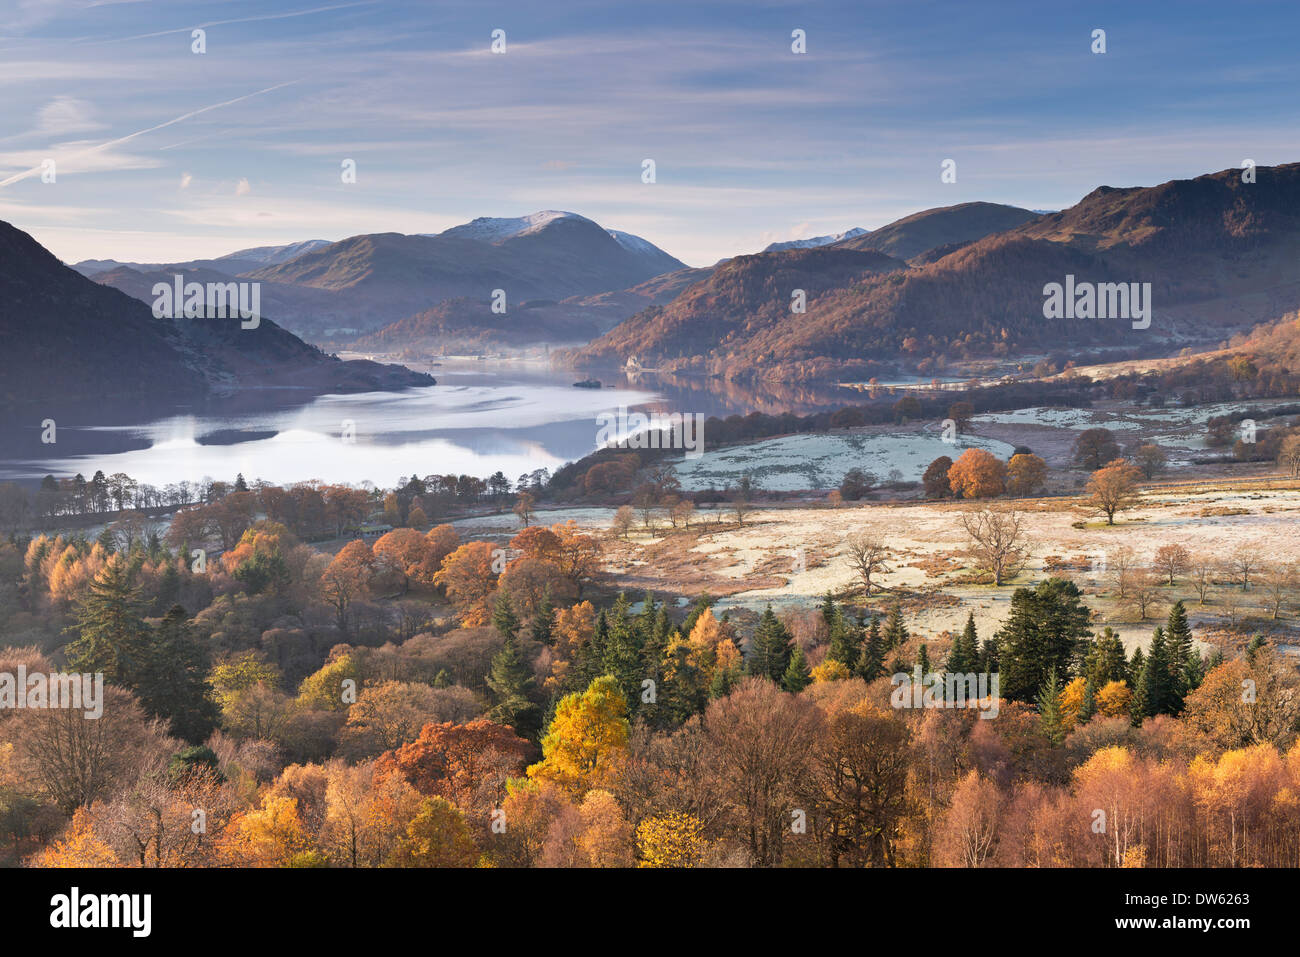 Ullswater from Gowbarrow Fell on a frosty autumn morning, Lake District, Cumbria, England. November 2013. - Stock Image